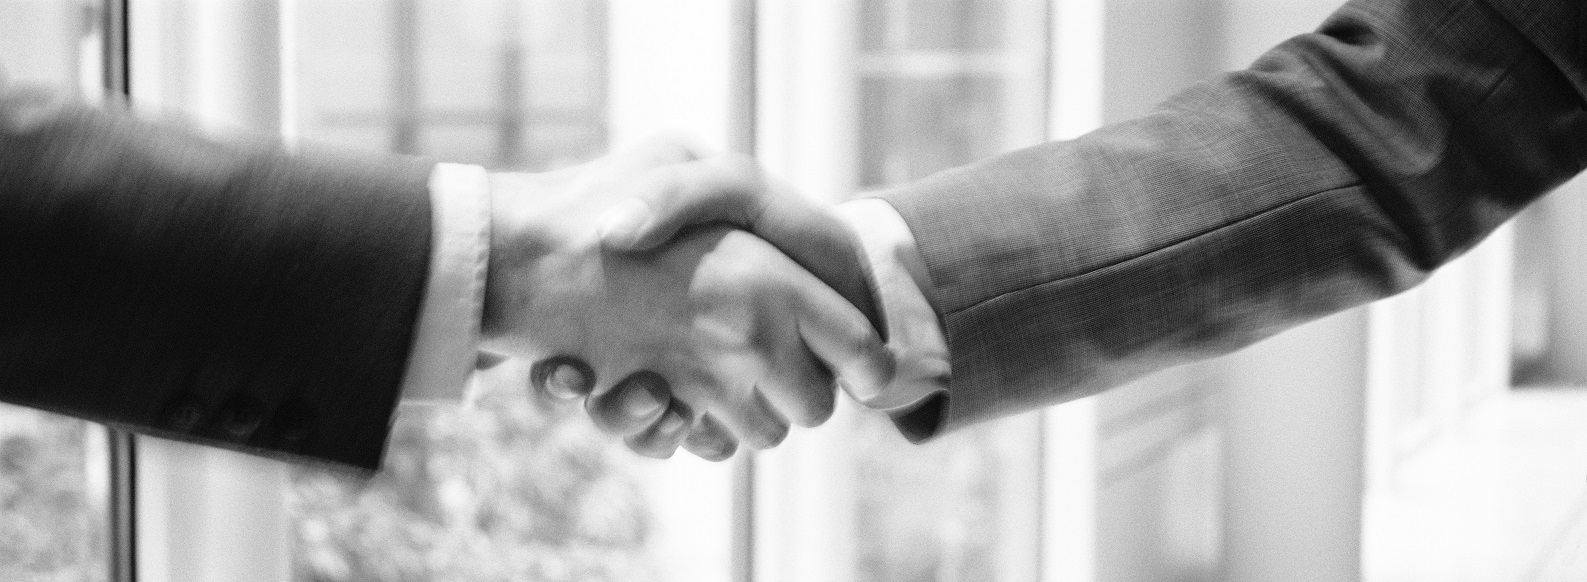 Two man hands in handshake, B&W